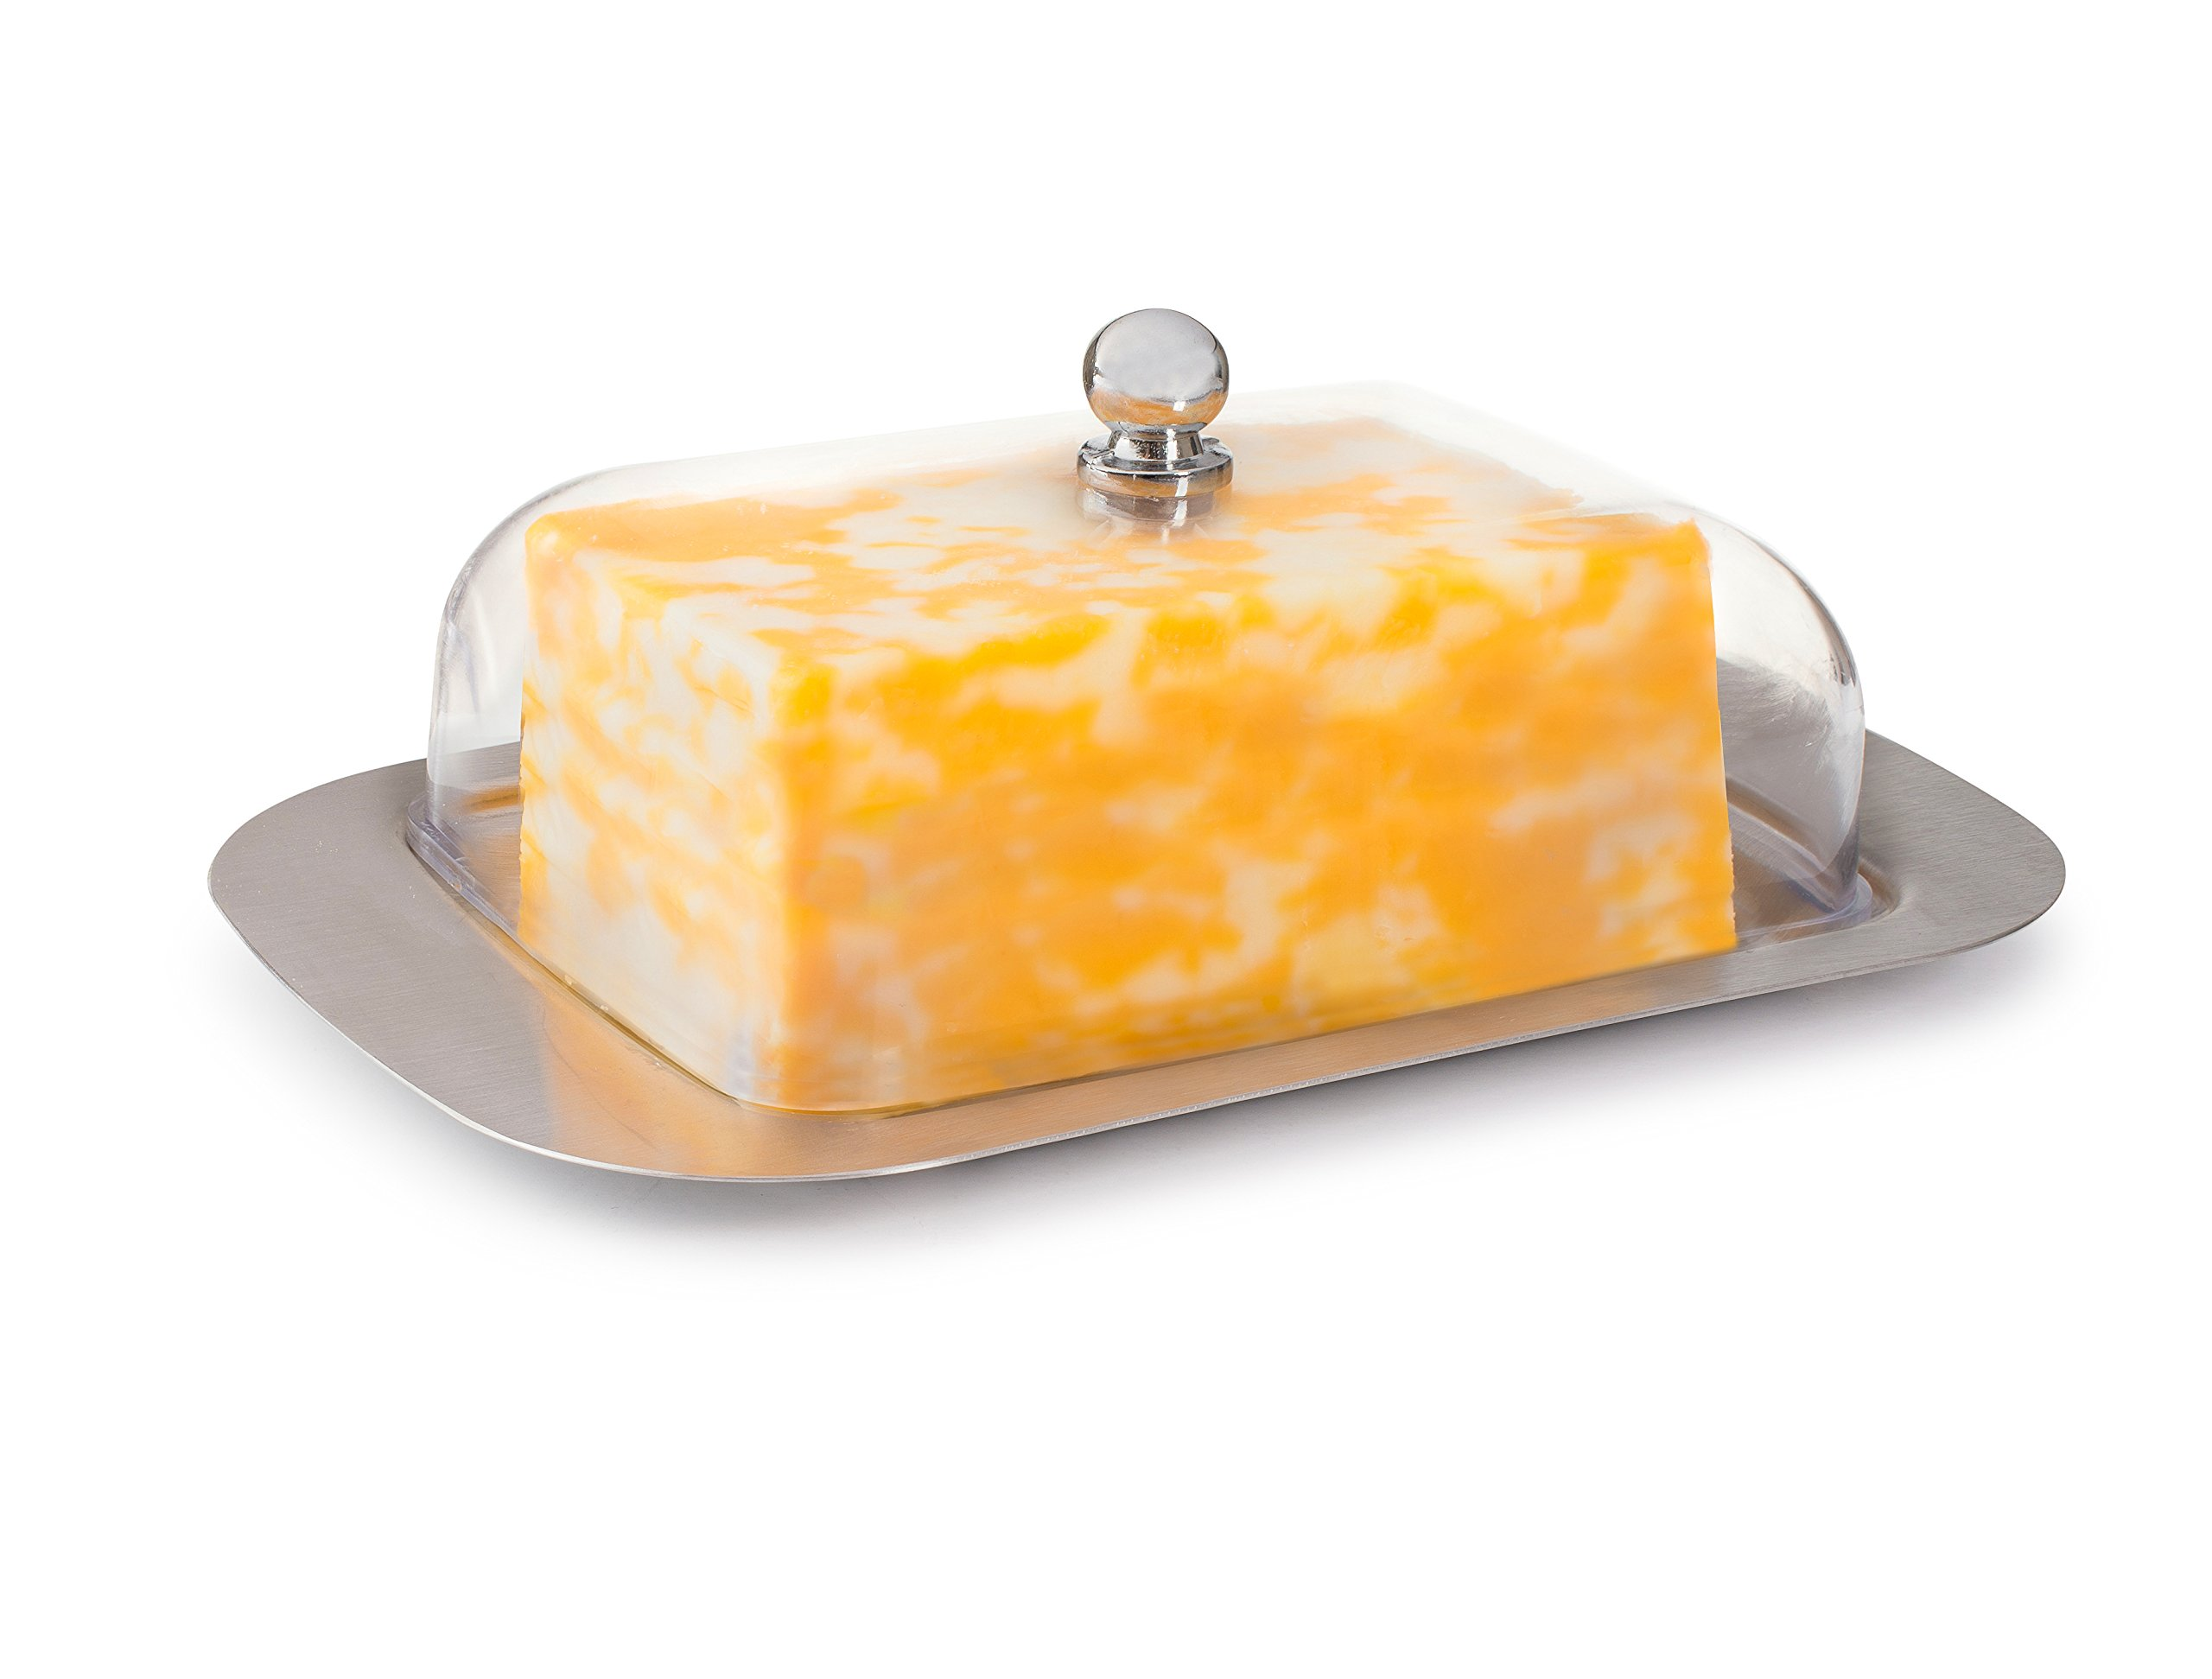 KUKPO Butter Dish - Butter Container With A Stainless Steel Butter Tray And Durable Plastic Cover, And Elegant Design, Luxury For Your Dinner Table